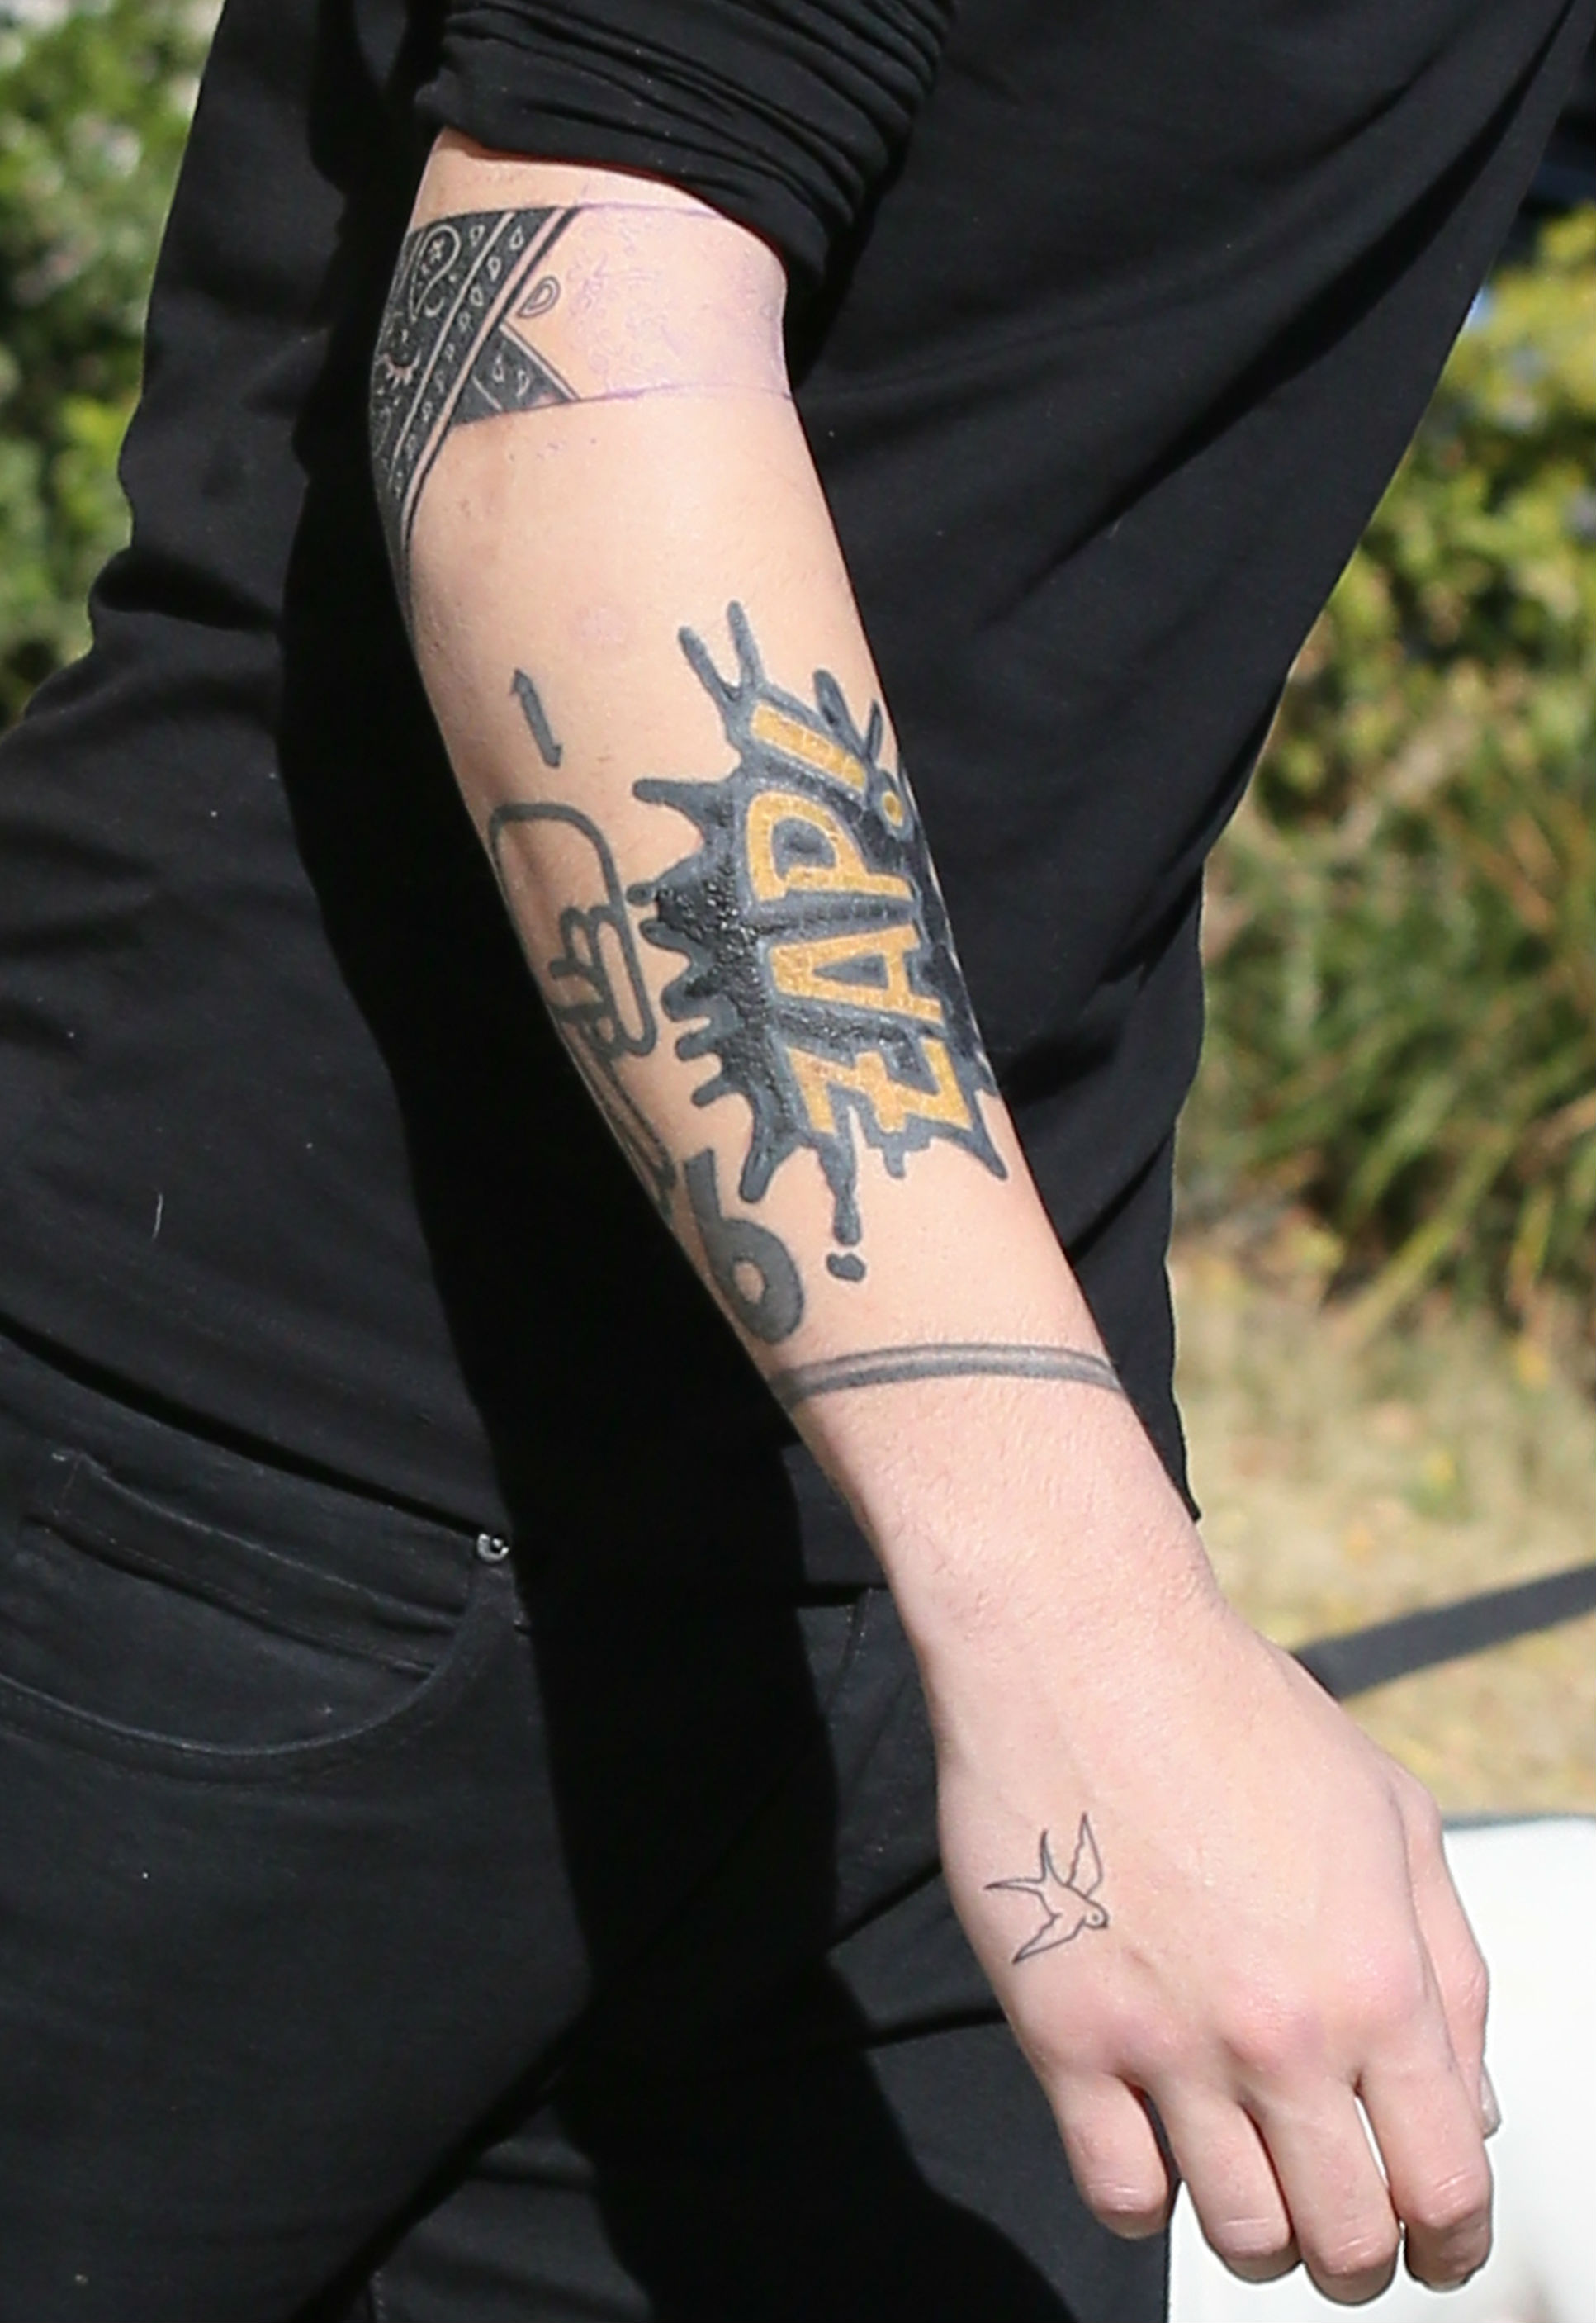 Zayn malik tattoos sleeve